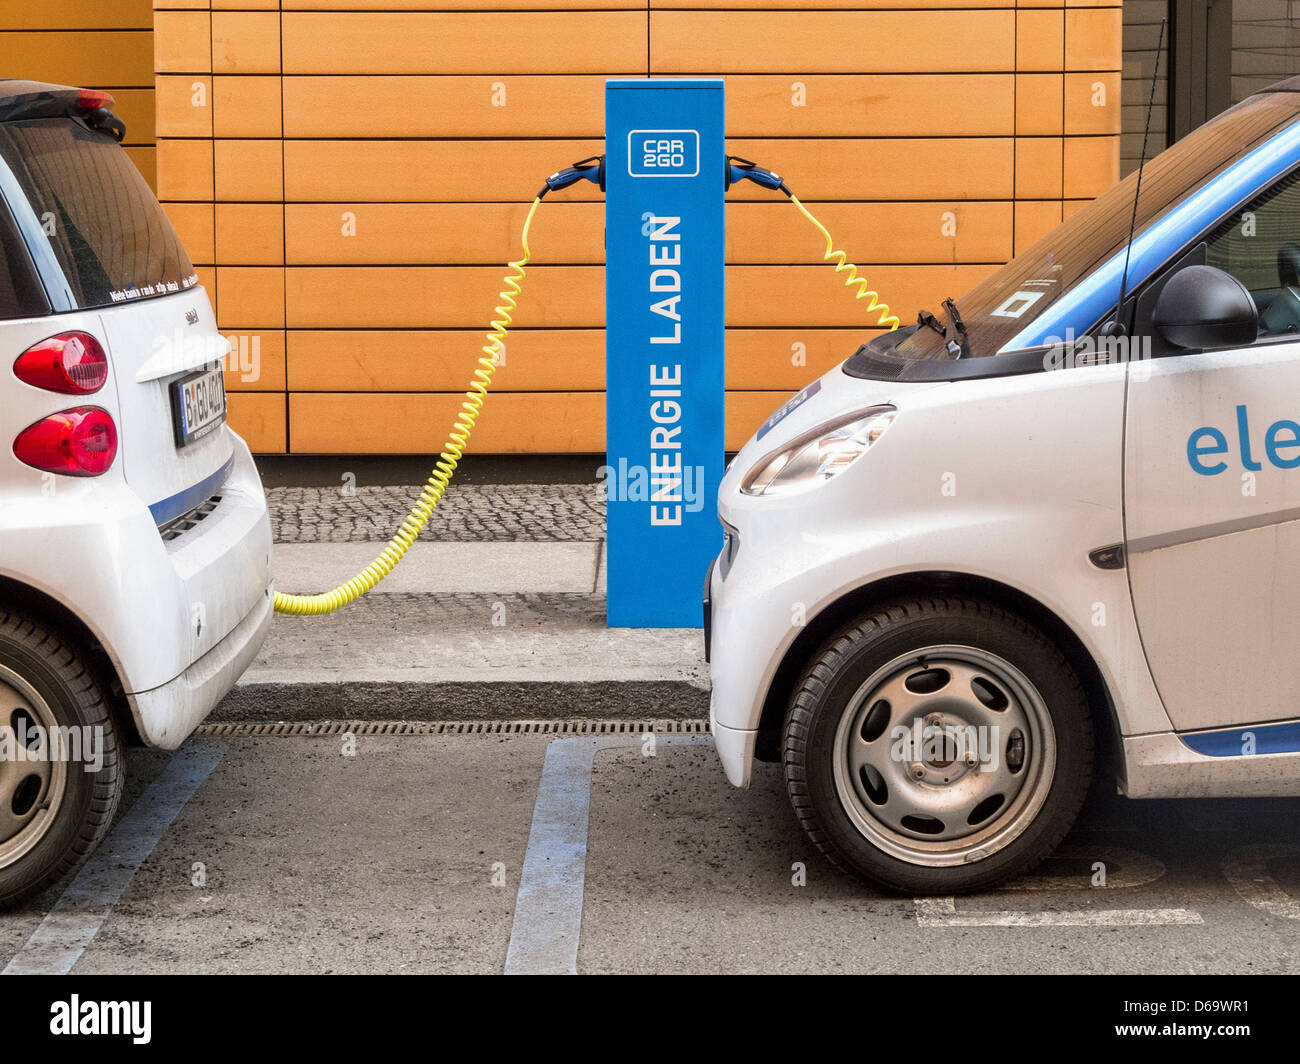 Electric cars charging at a re-fuelling point - Potsdamerplatz, Berlin Stock Photo